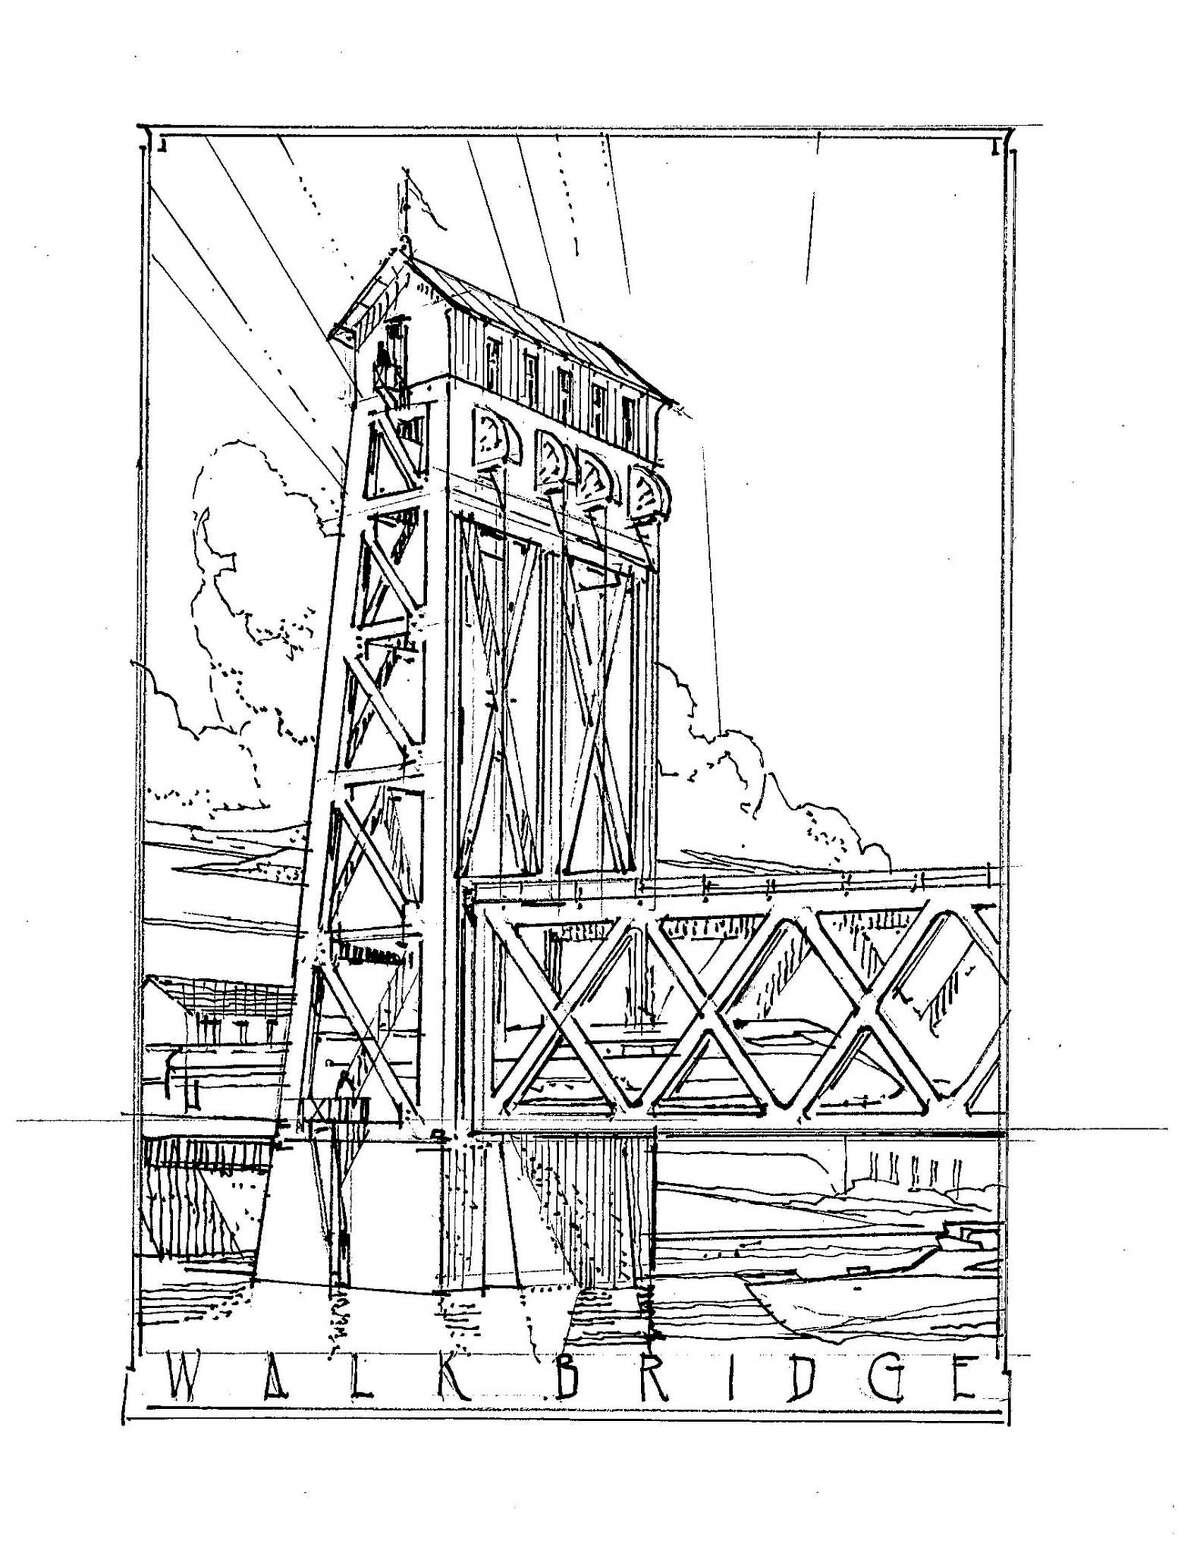 Bruce Beinfield, a South Norwalk architect who sits on the panel, has put forward one sketch showing a simple shed-like structure atop one of the bridge towers. He said the structure speaks to Norwalk?'s history as a working waterfront.